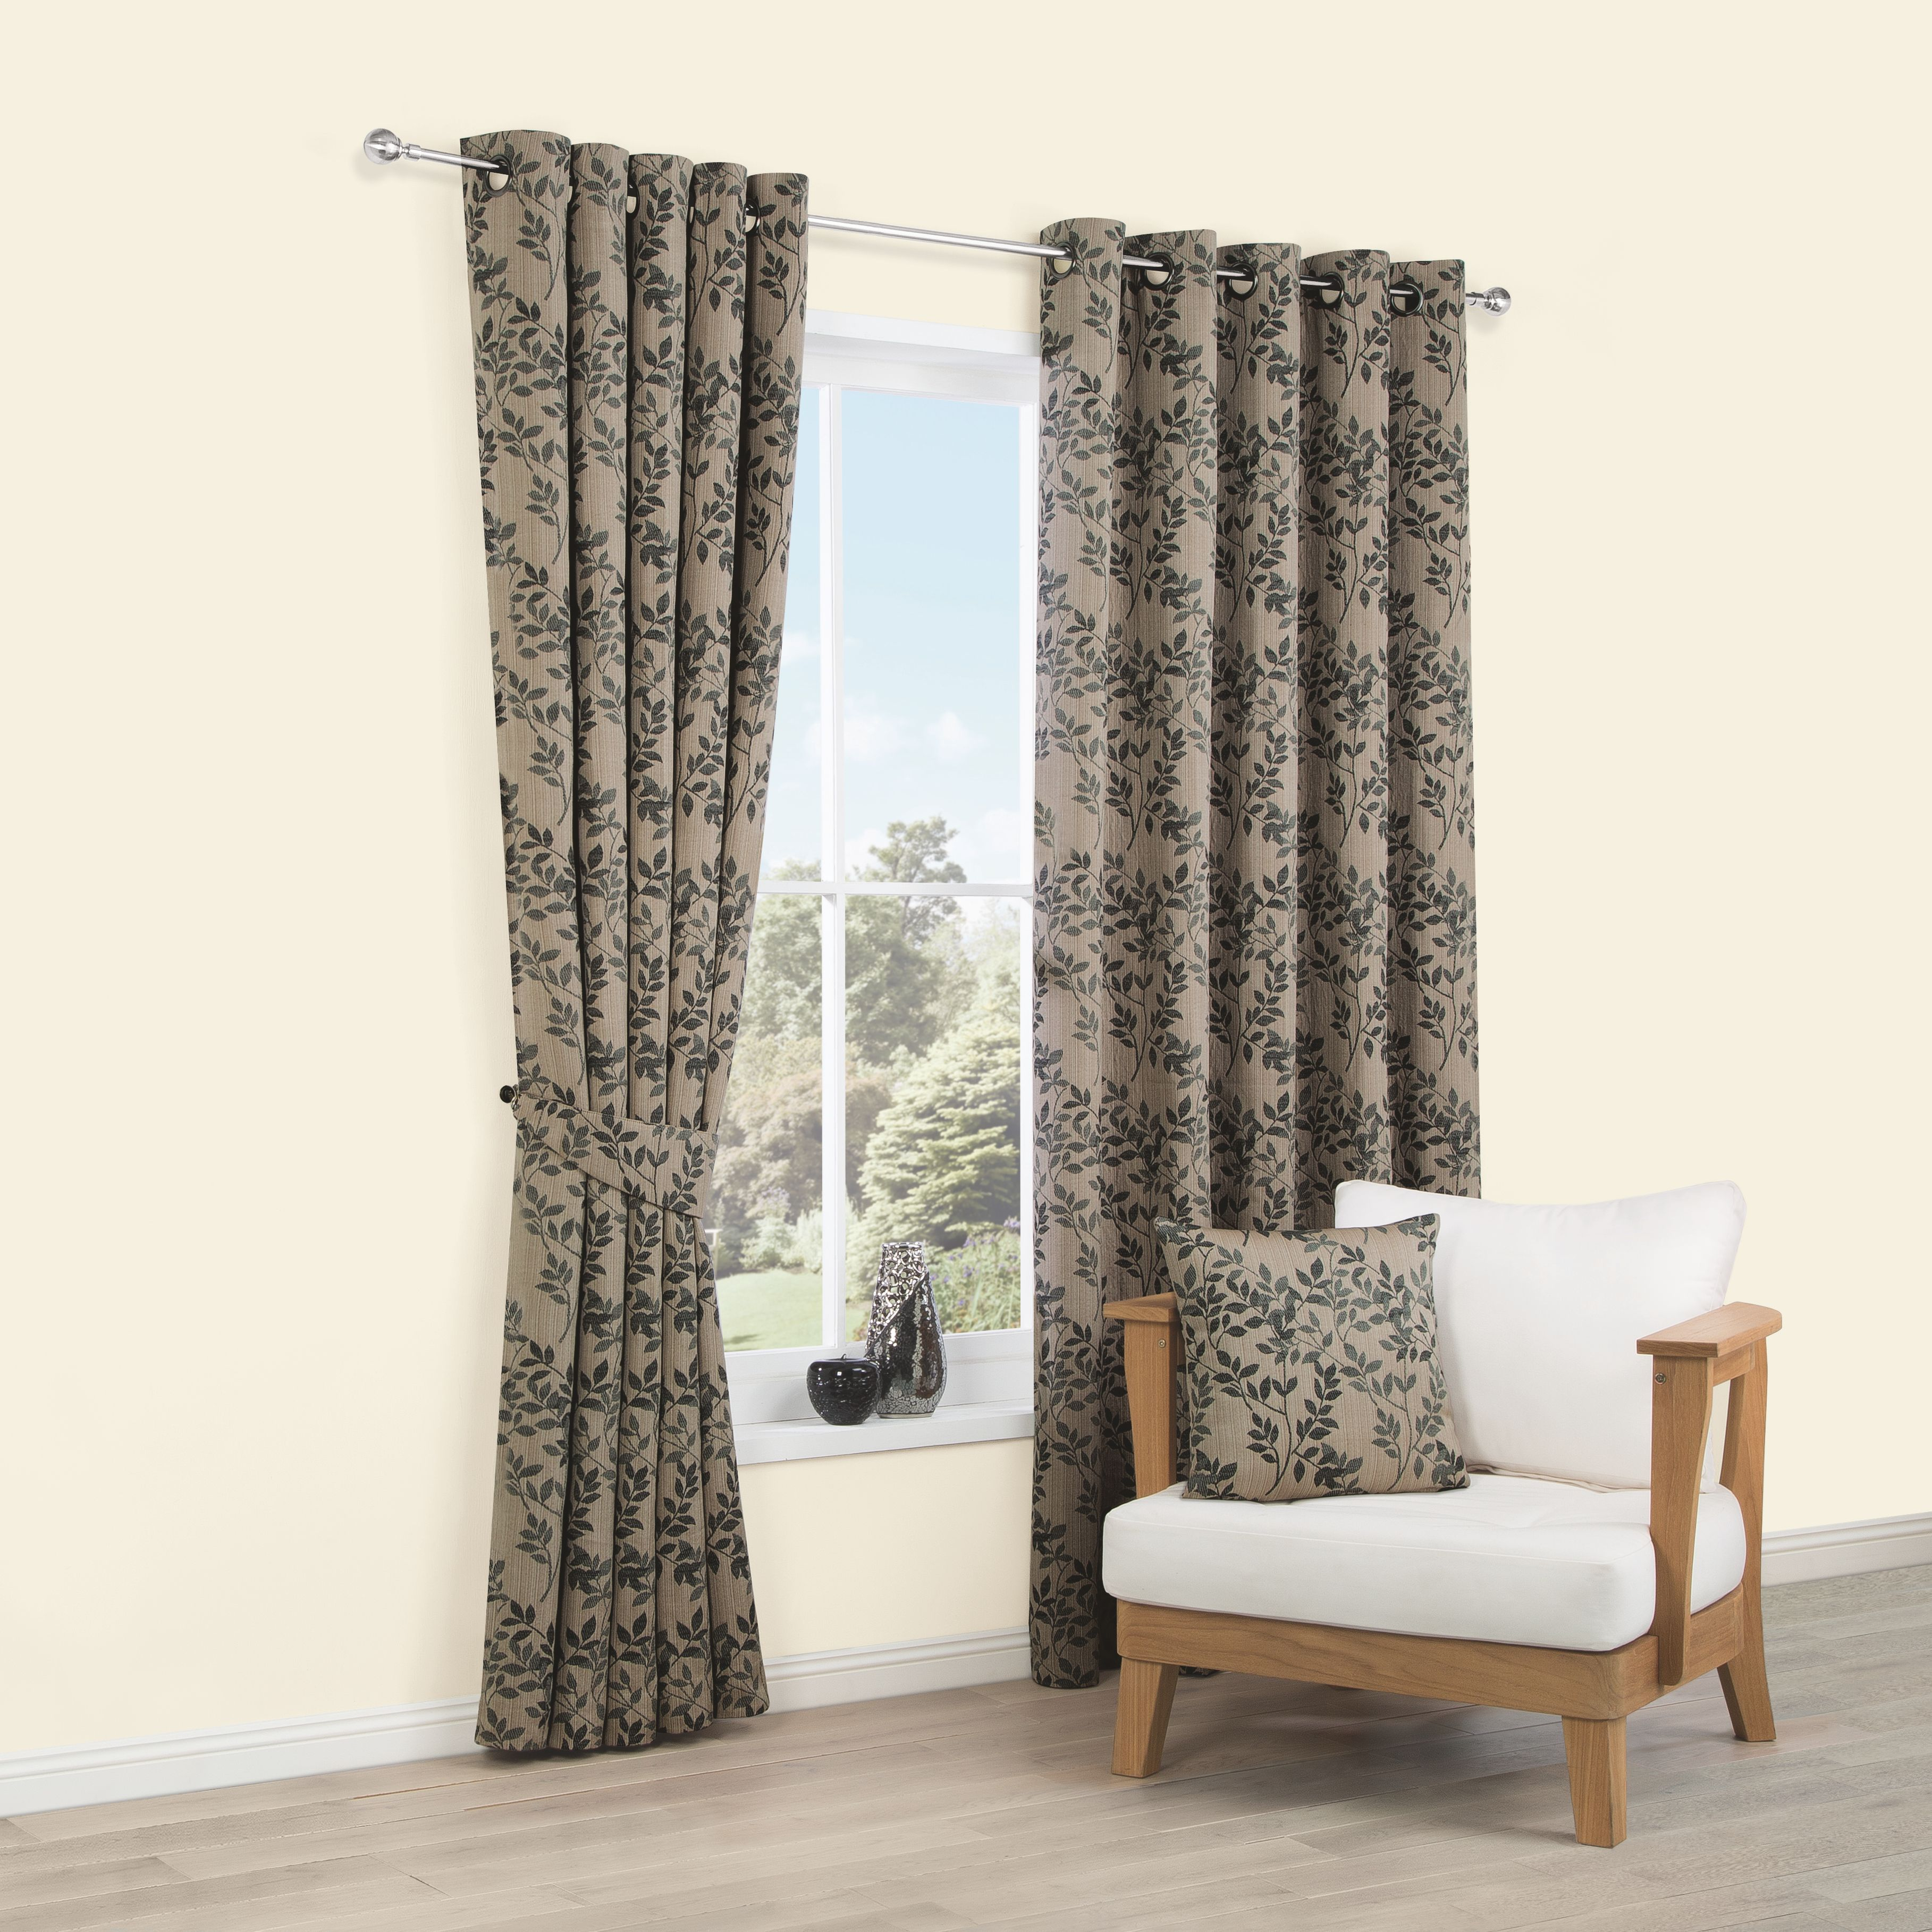 Walton Black Natural Cream Leaves Jacquard Woven Eyelet Lined Curtains W167 Cm L228